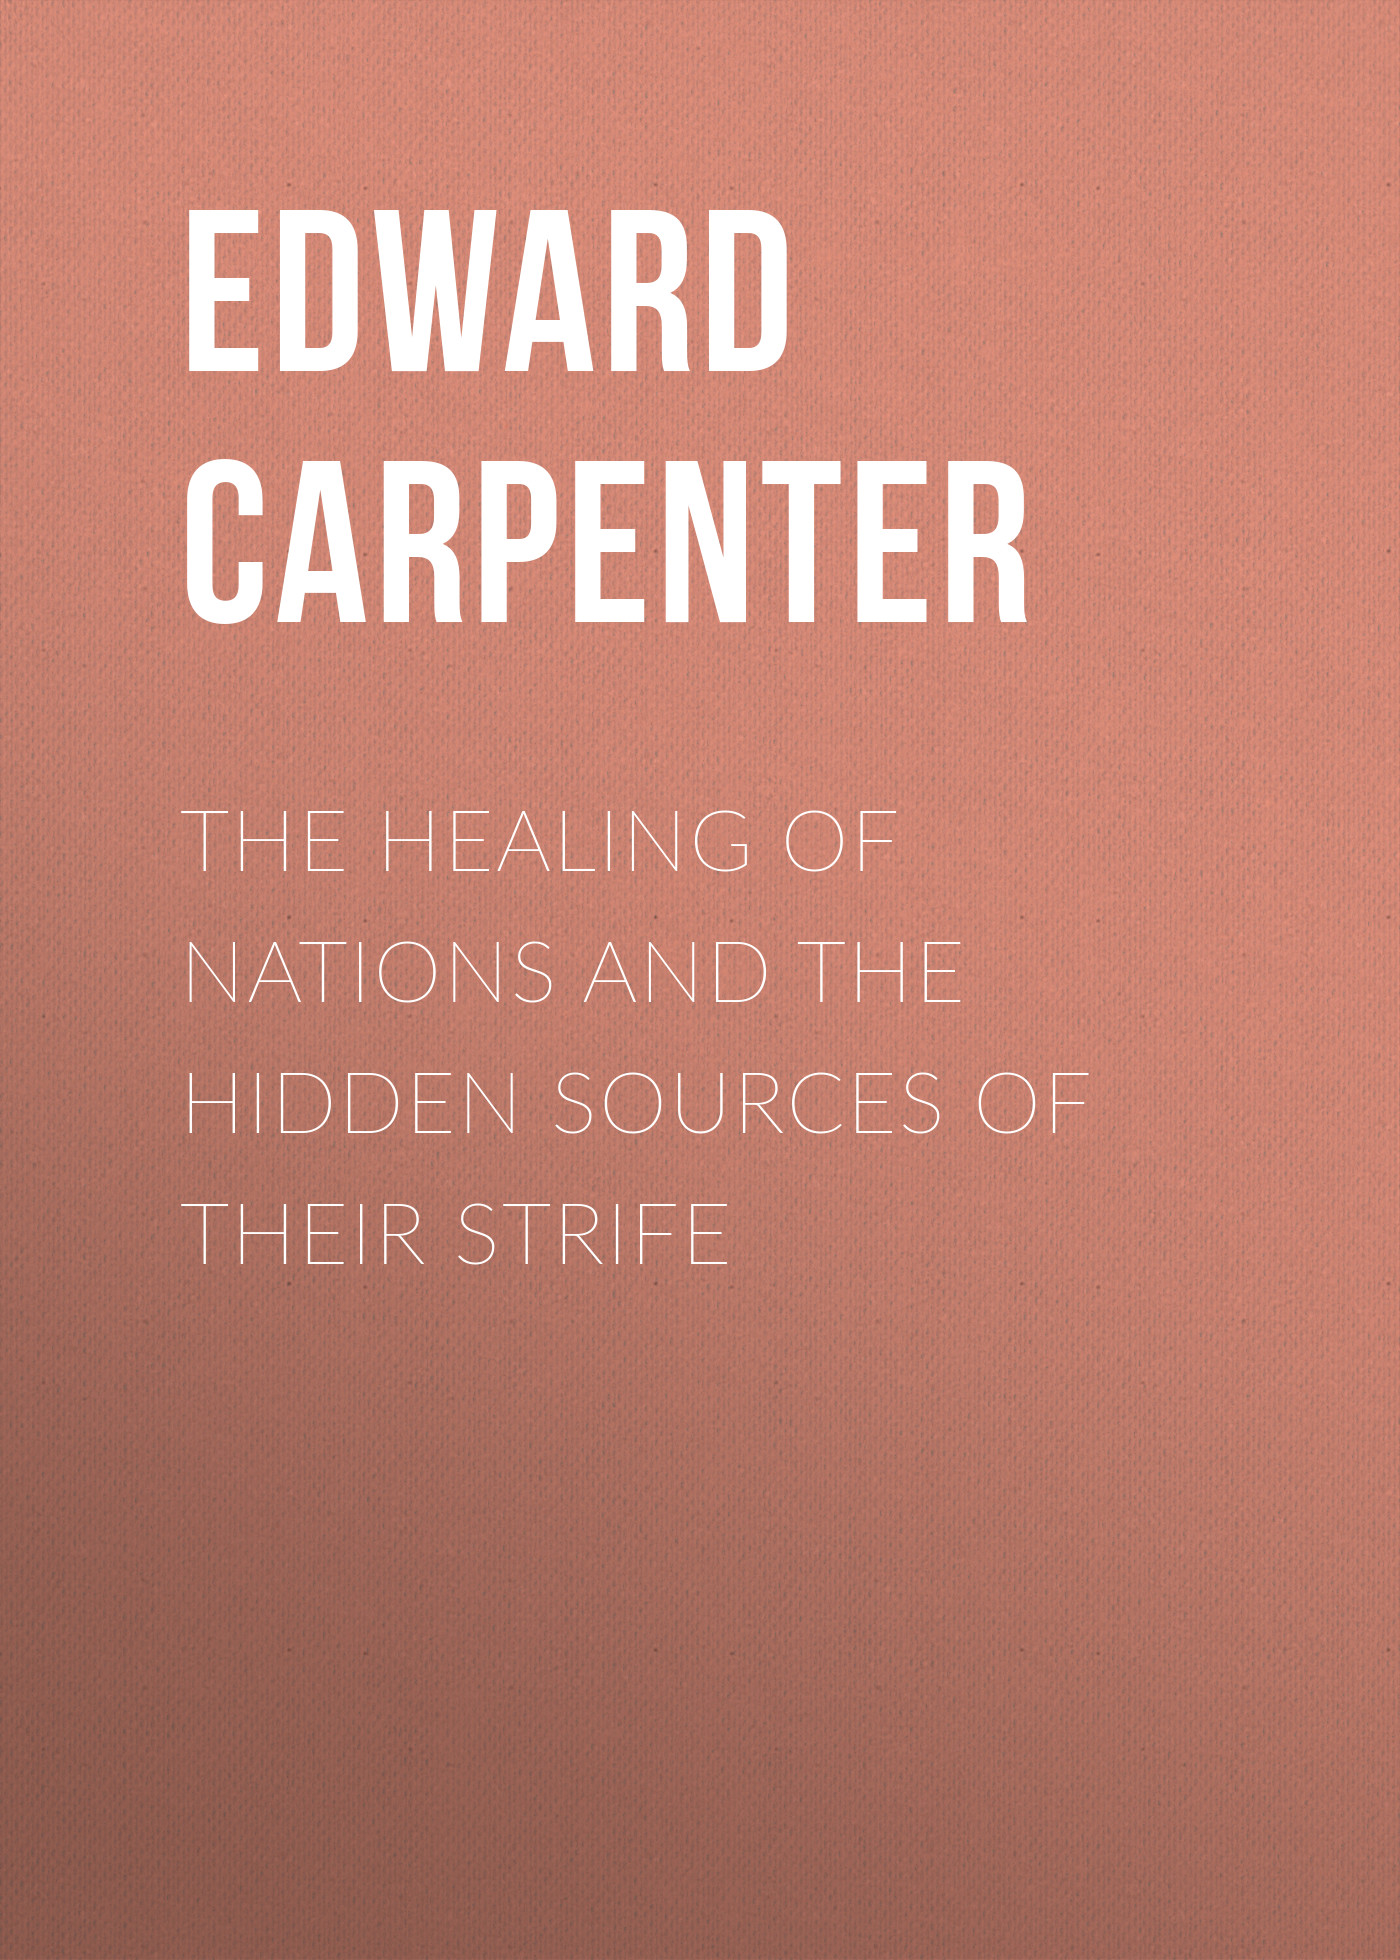 Edward Carpenter The Healing of Nations and the Hidden Sources of Their Strife sources